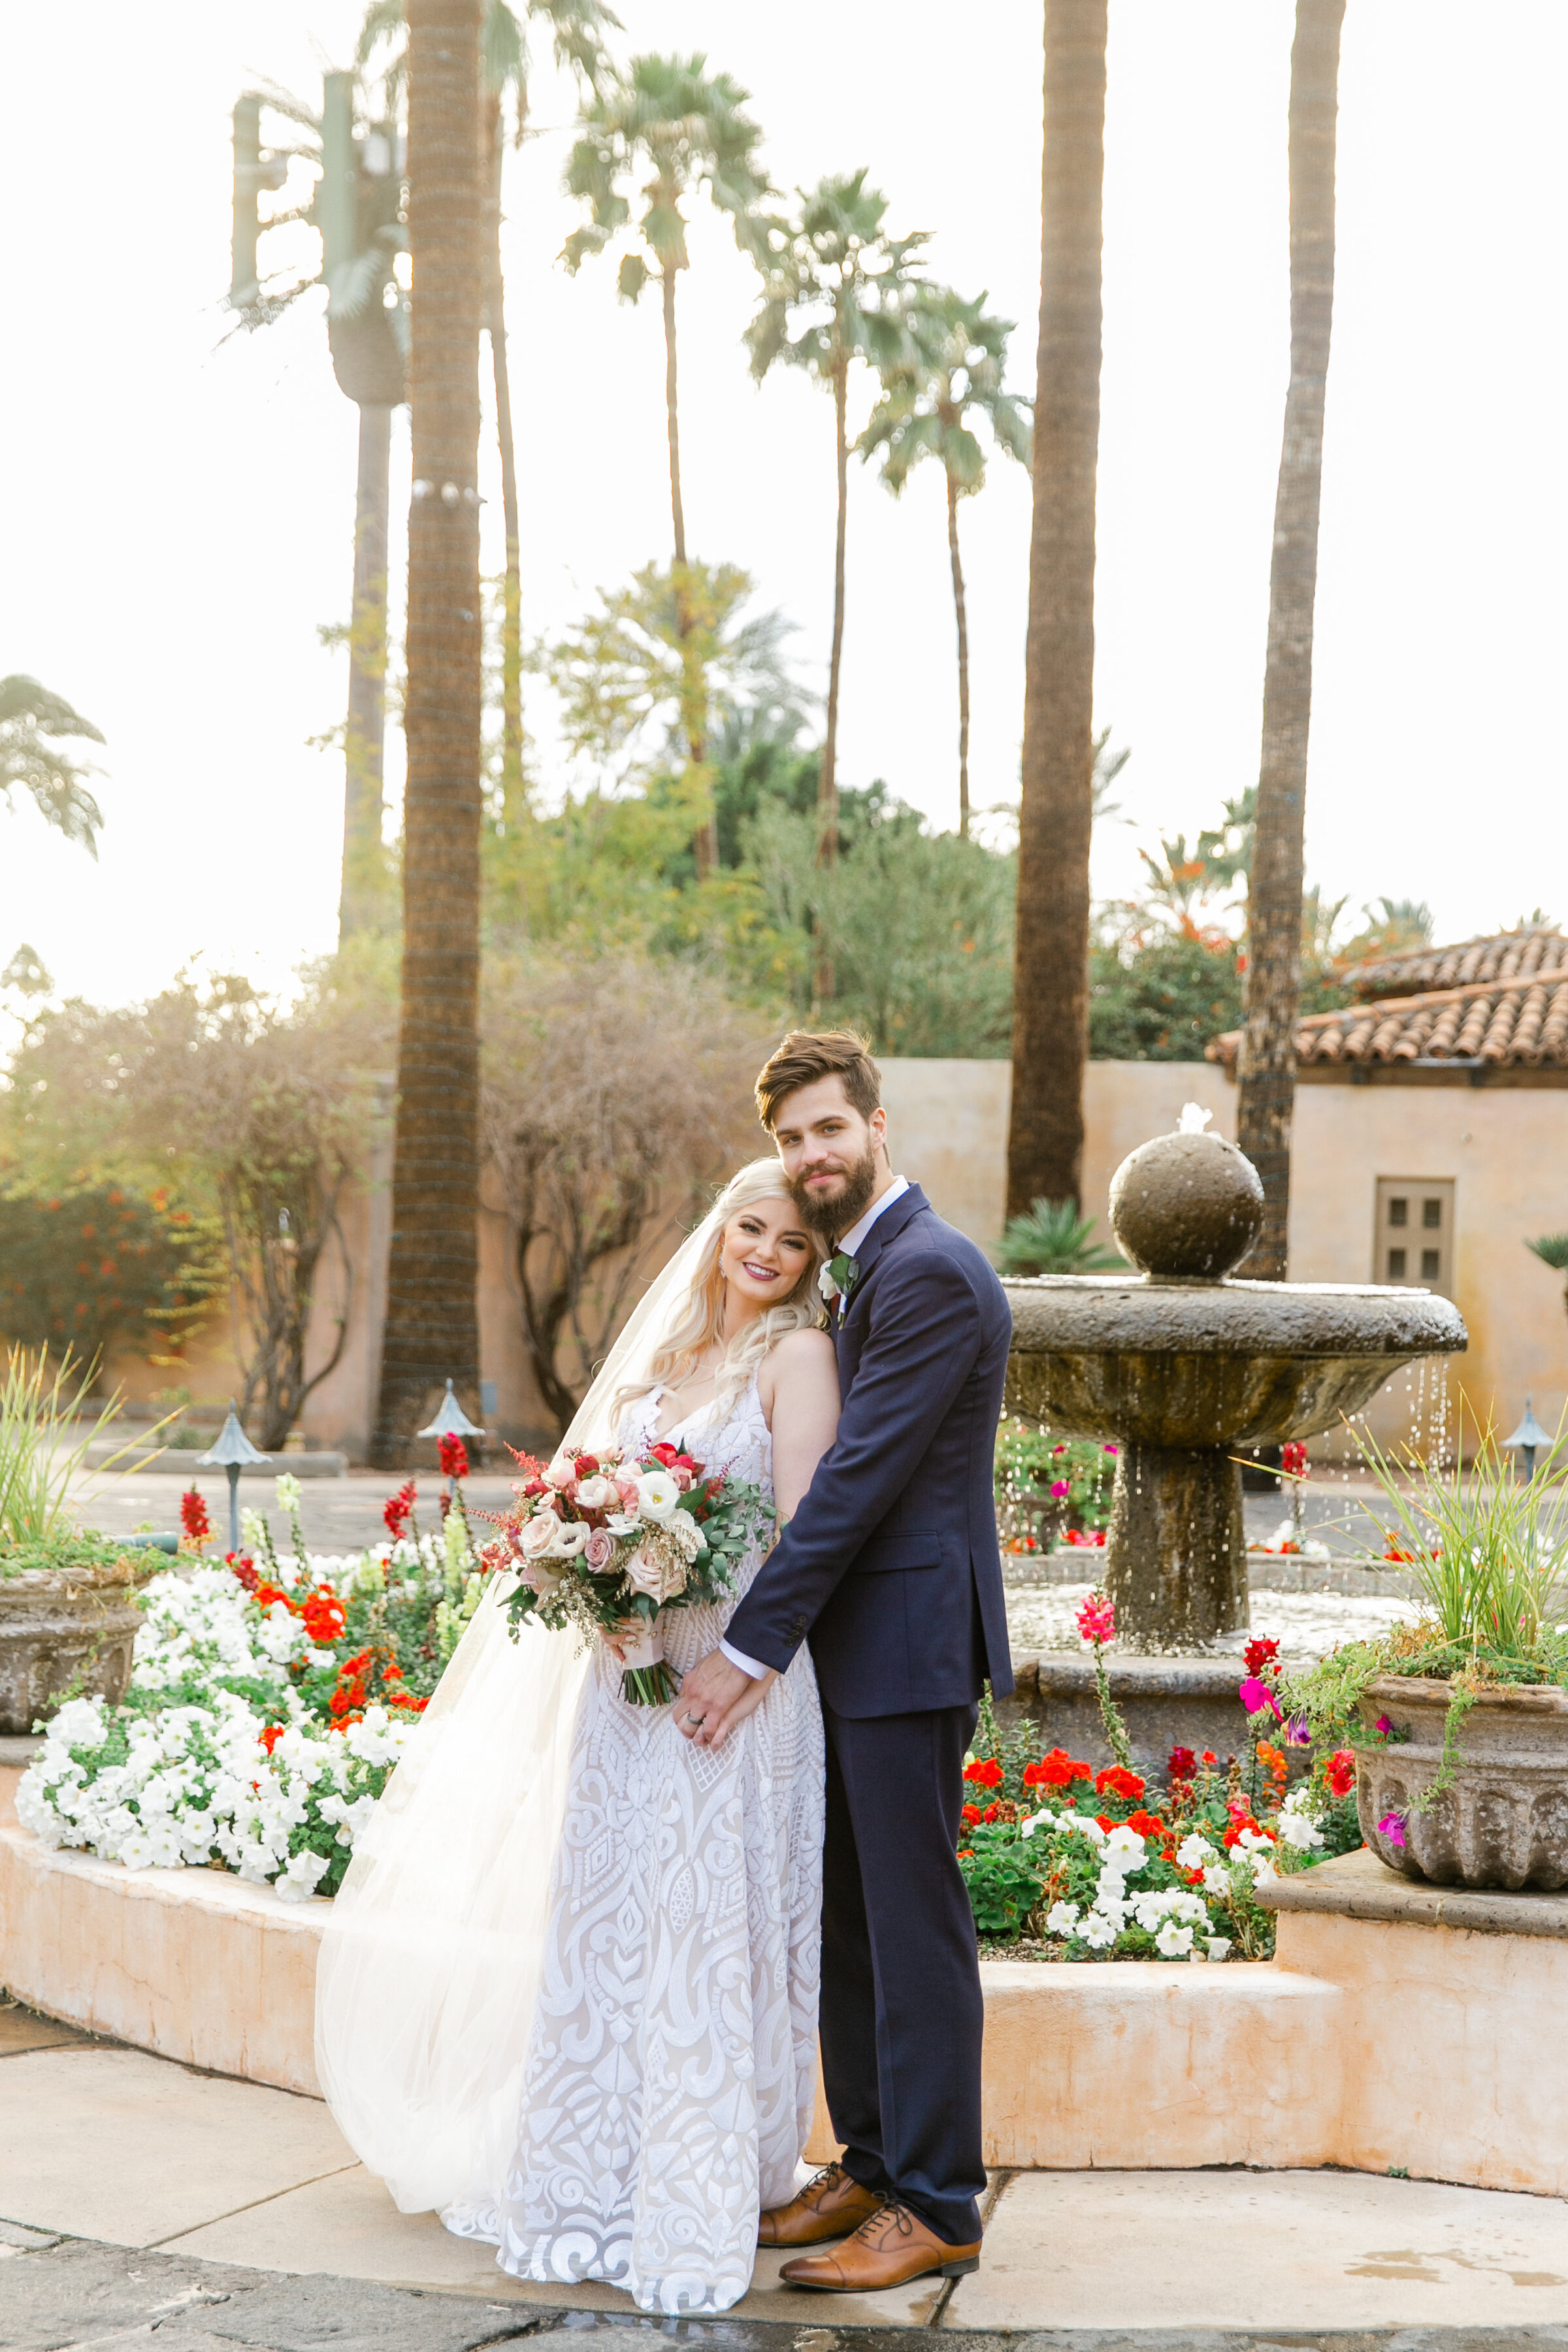 Karlie Colleen Photography - The Royal Palms Wedding - Some Like It Classic - Alex & Sam-539